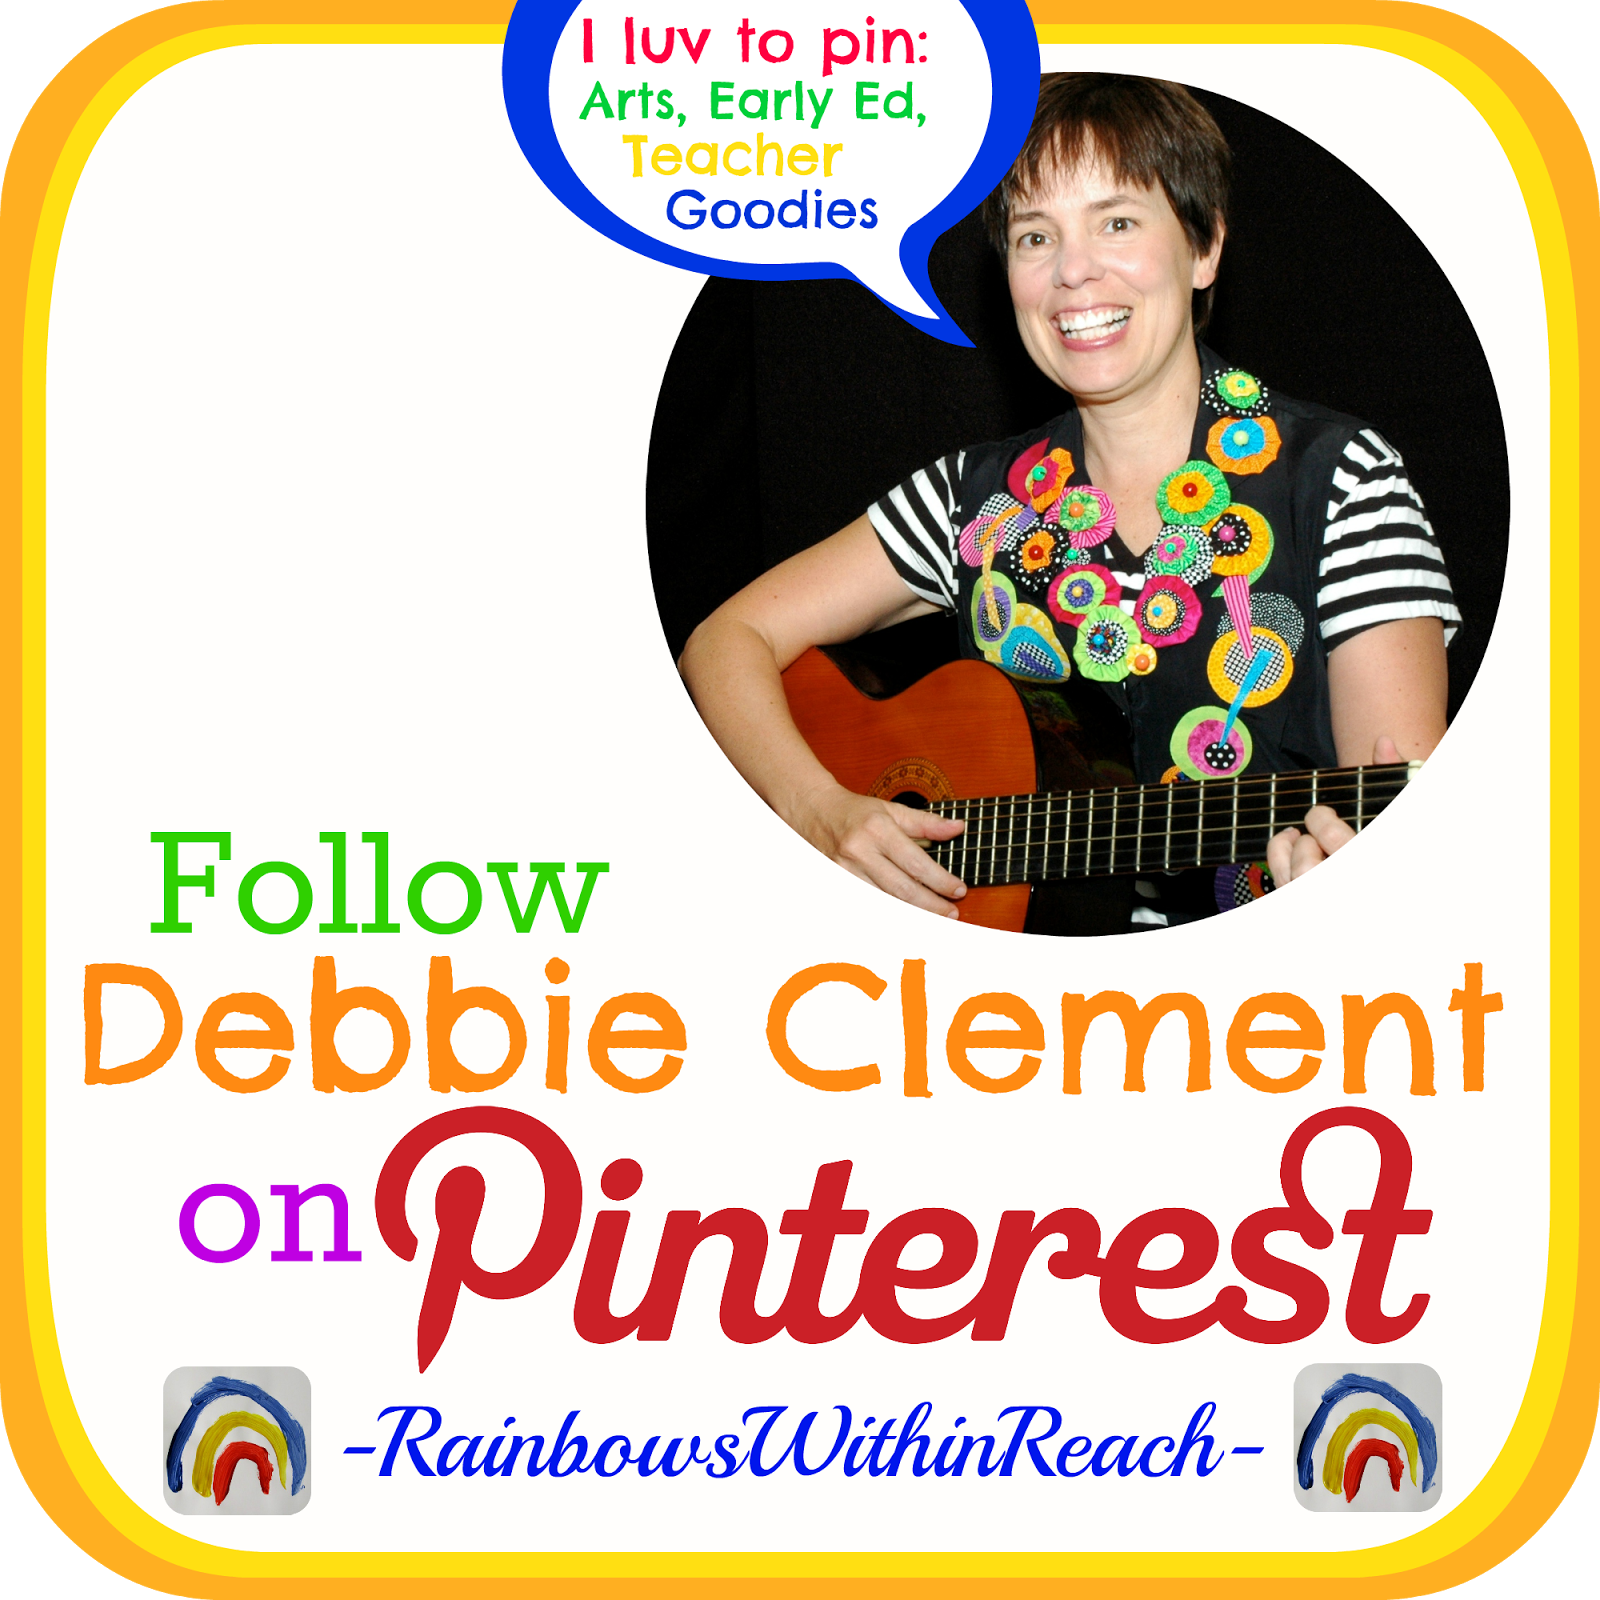 Follow Debbie Clement on Pinterest